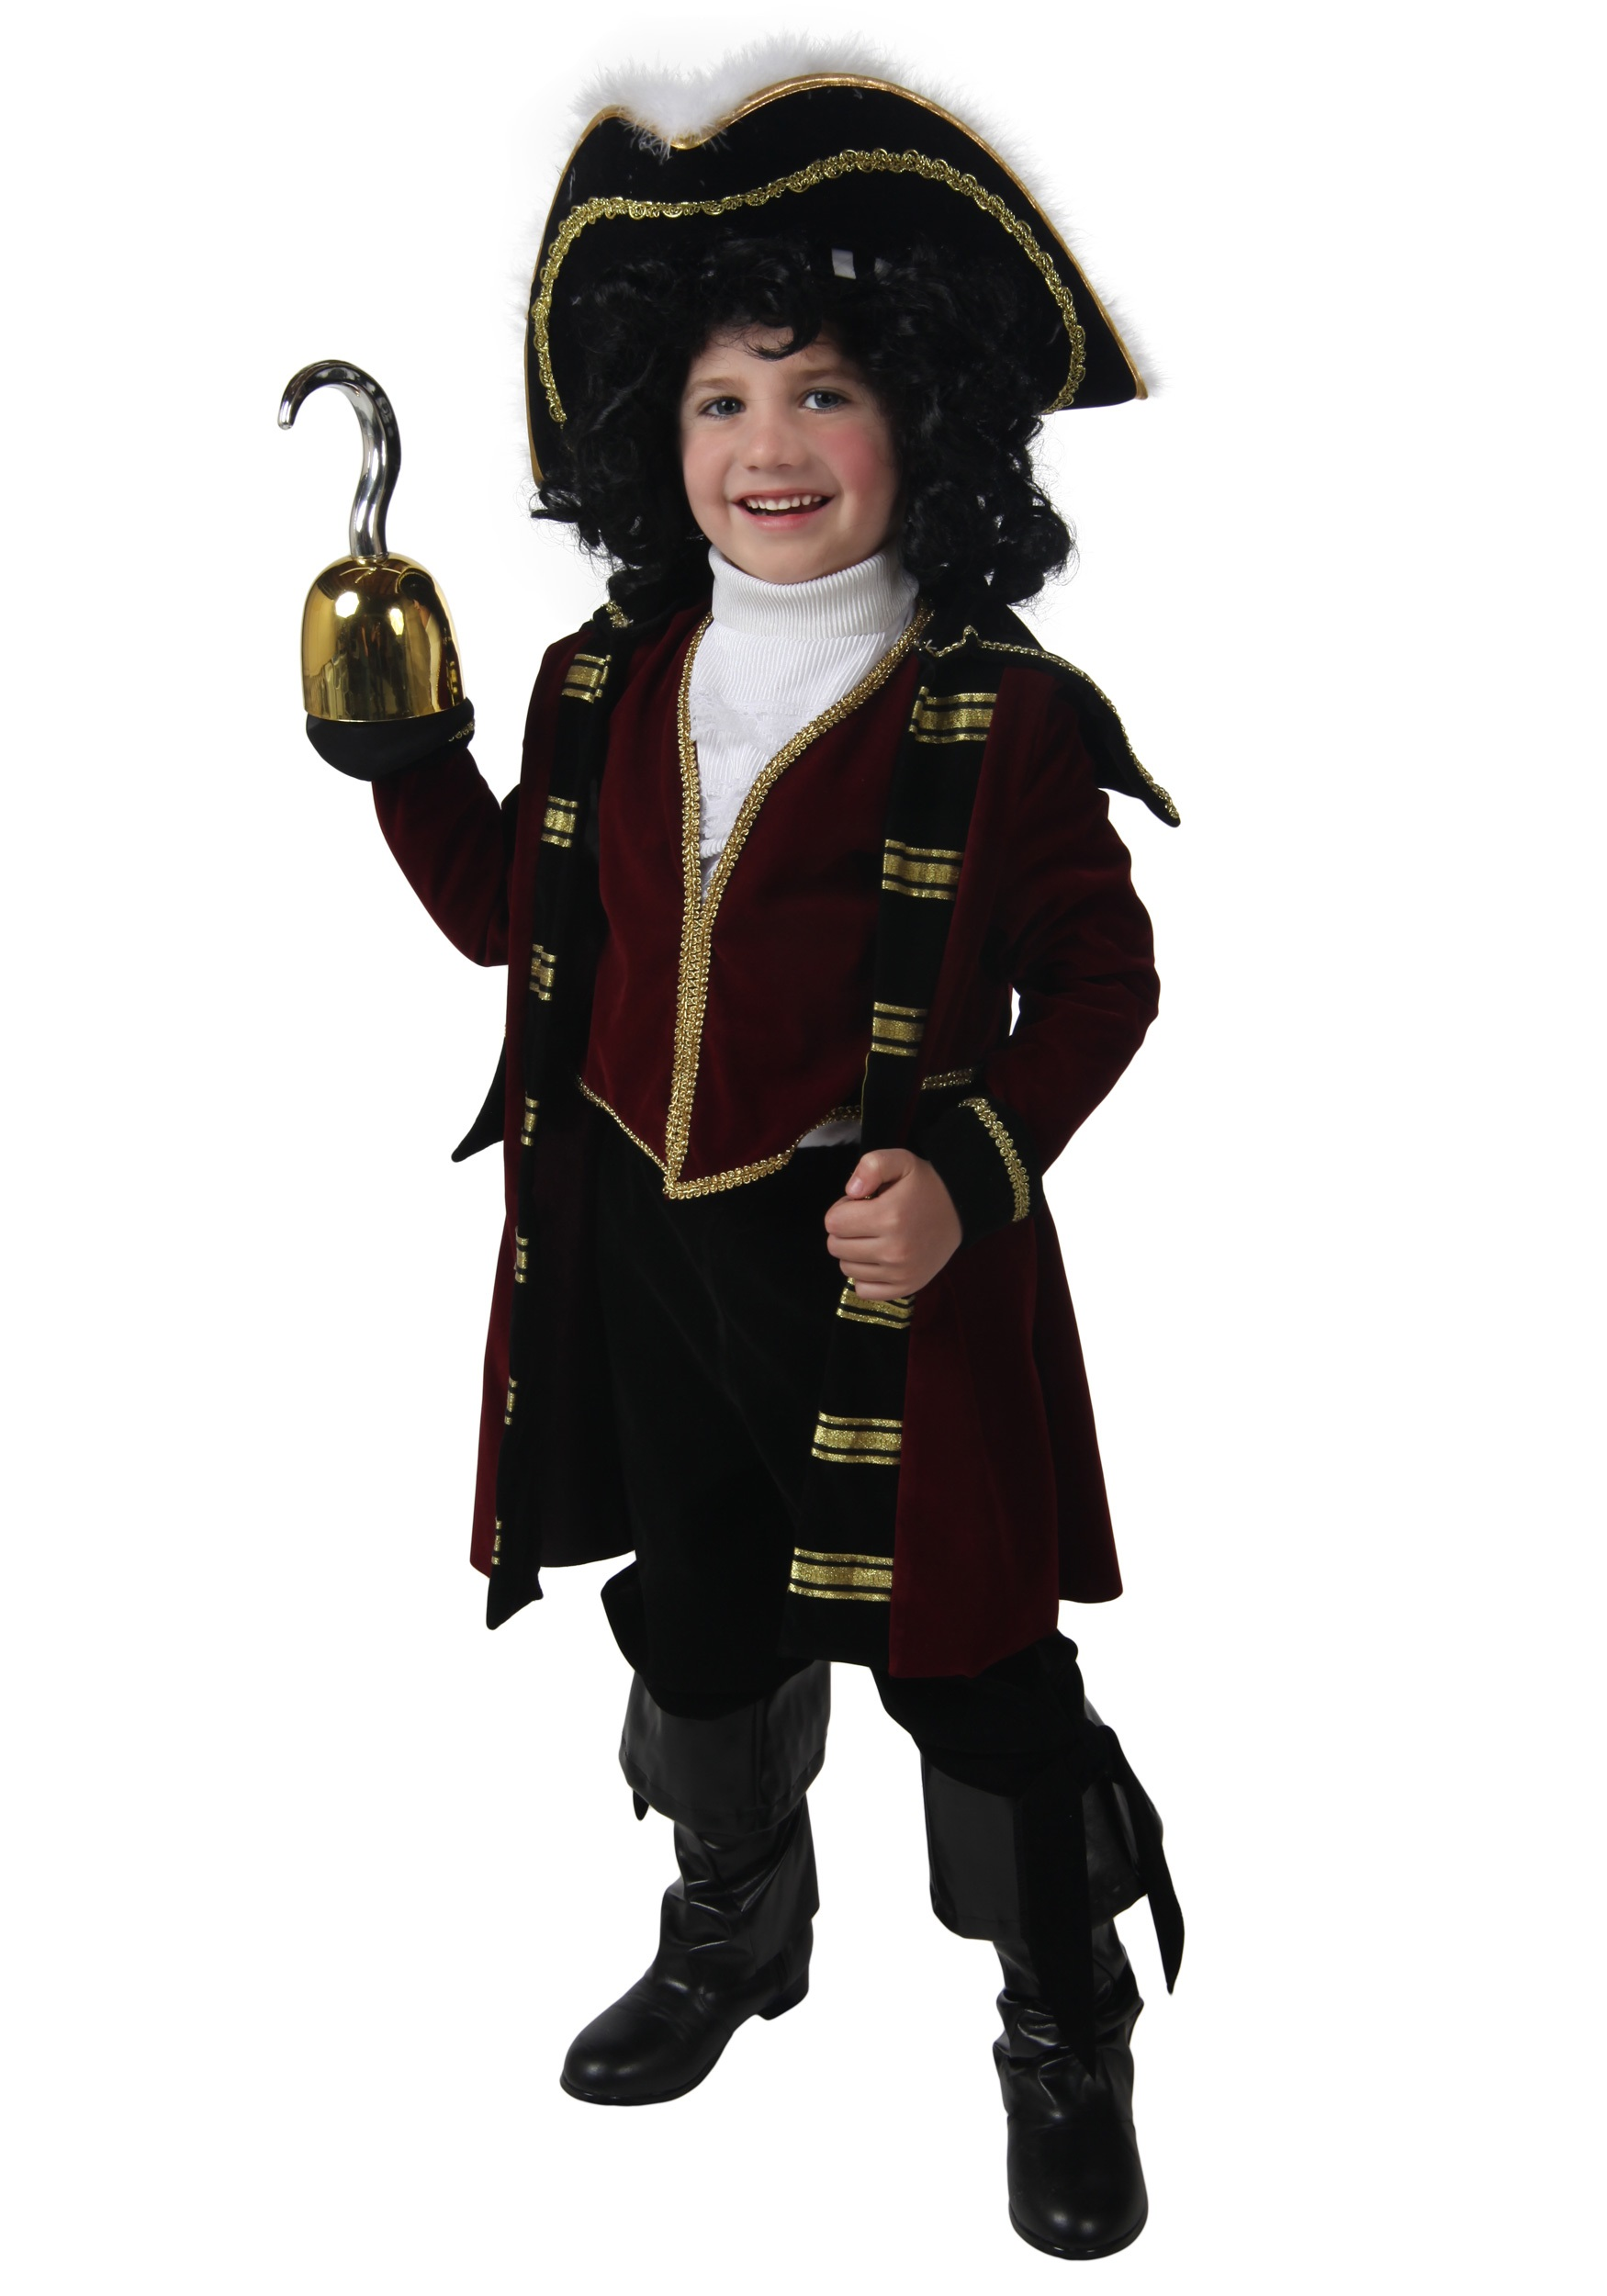 cheap caribbean costumes for party, find caribbean costumes for